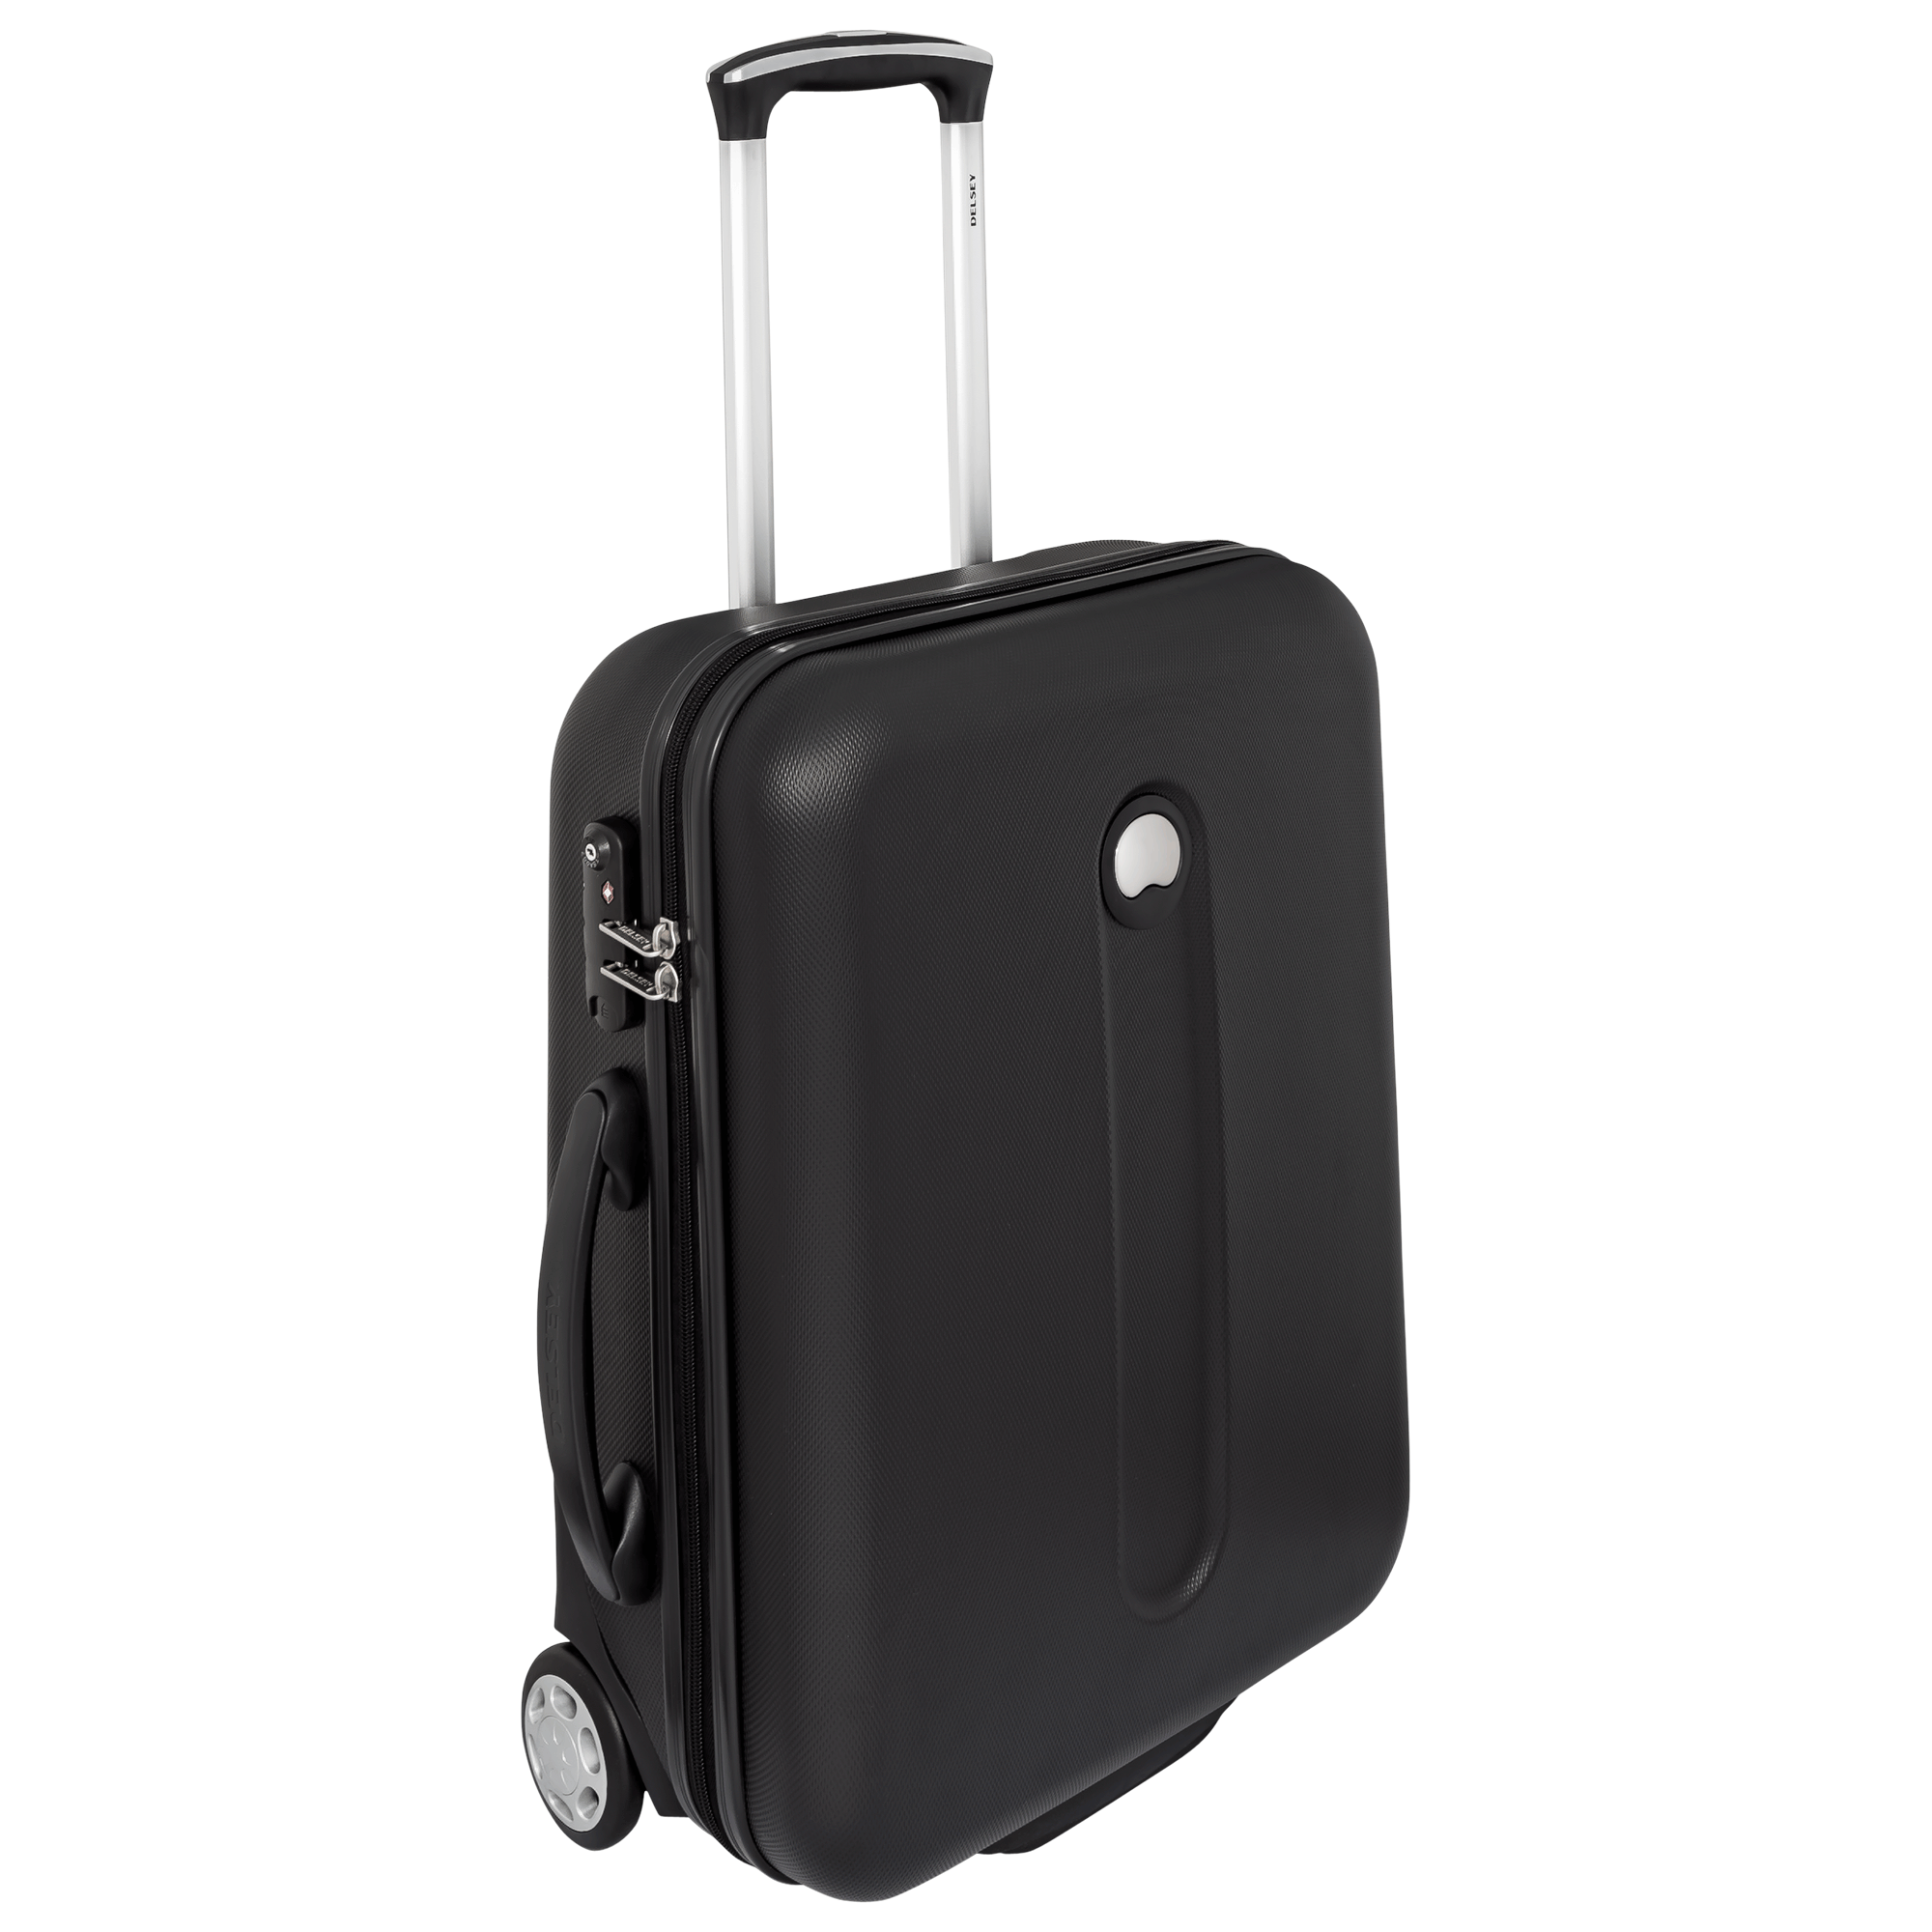 luggage_PNG10729.png